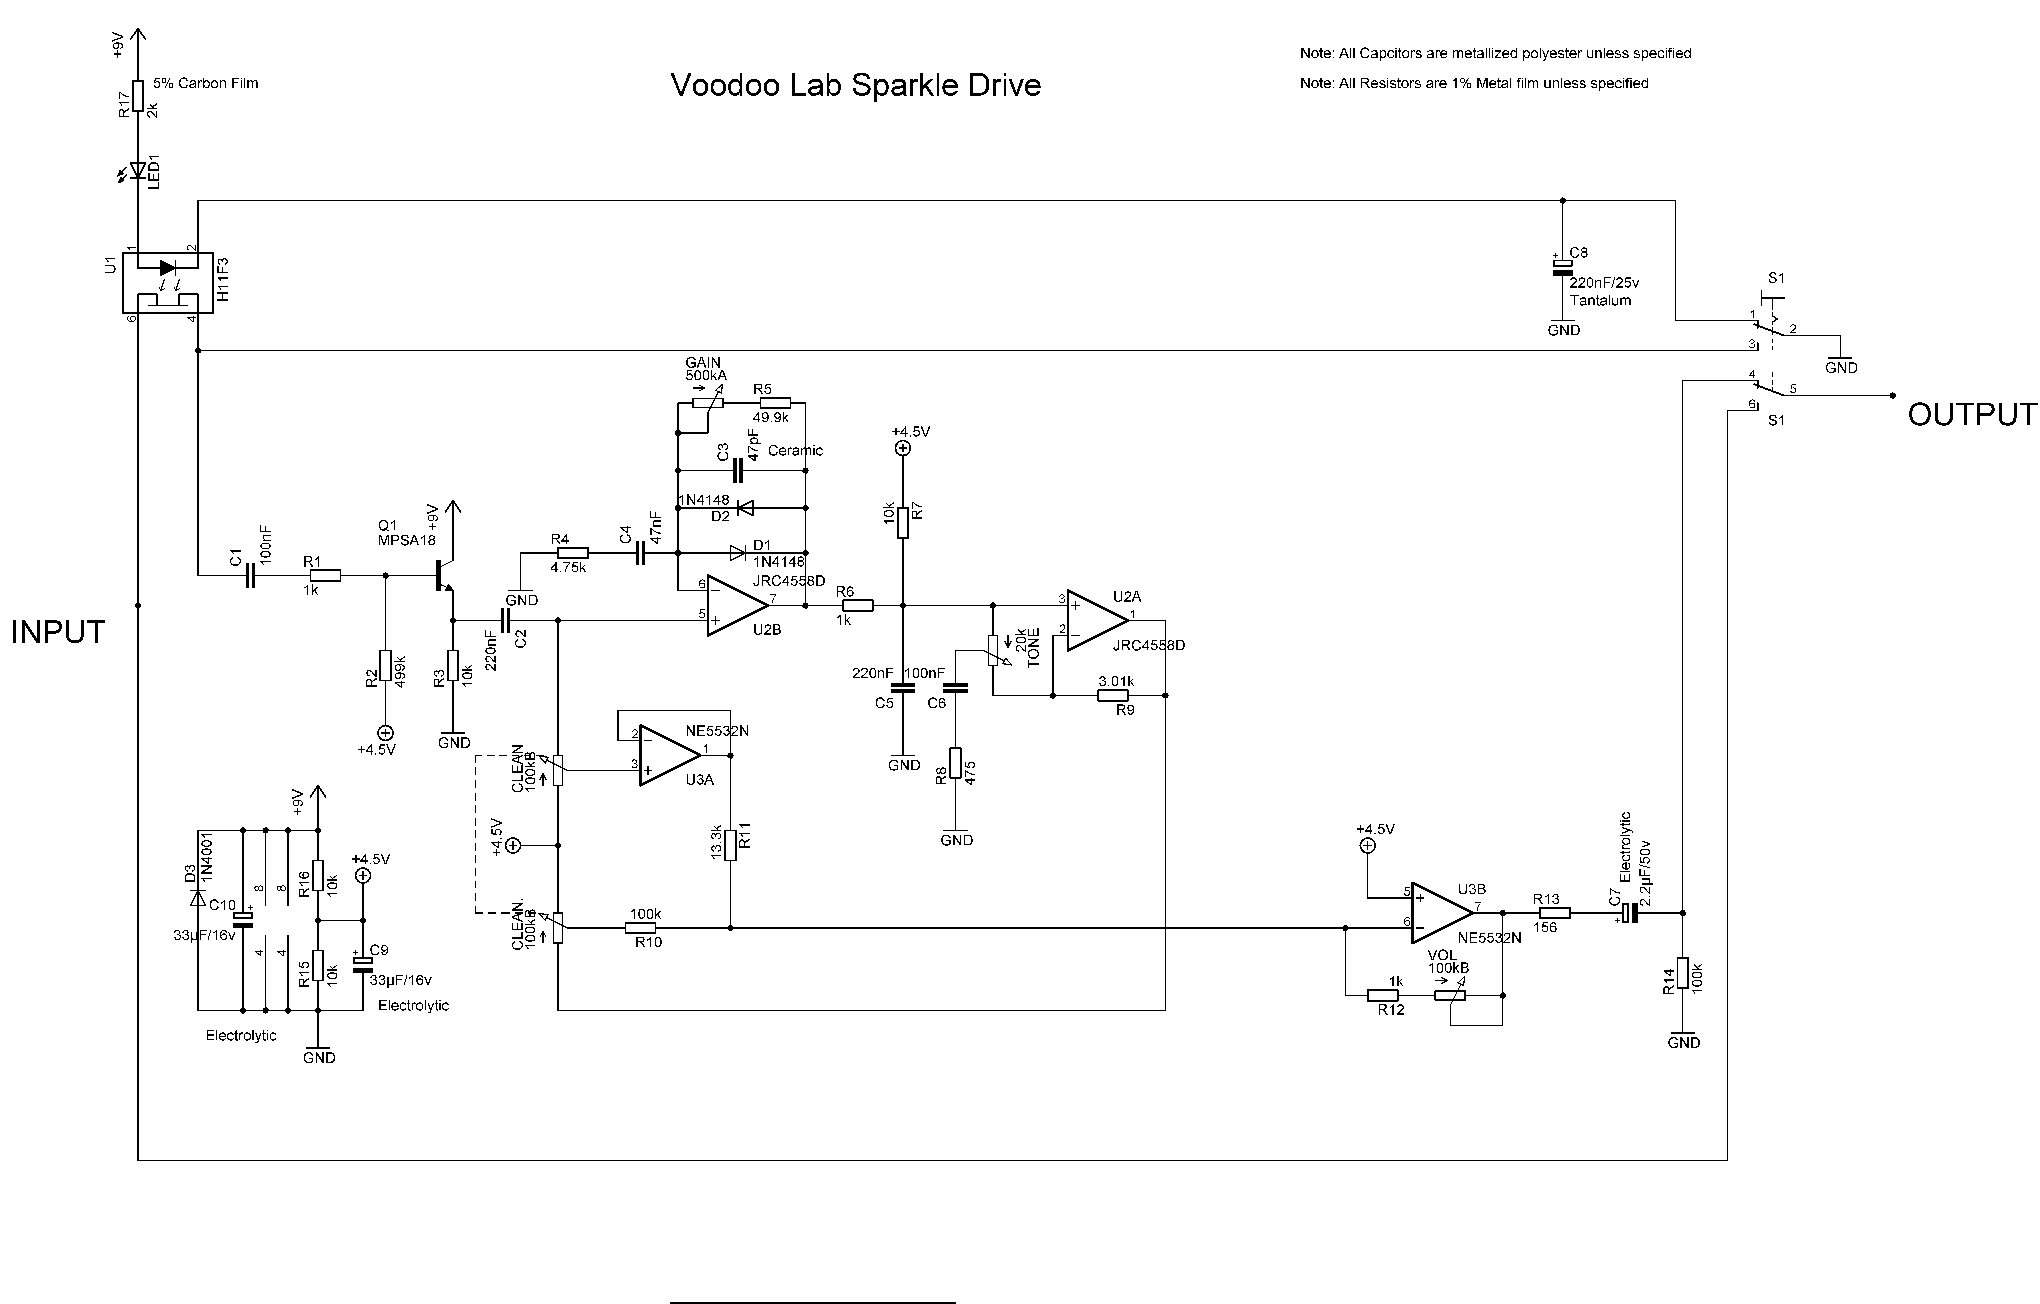 Modding A Way Huge Green Rhino For More Clarity And Drive The Distortion Pedal Schematics Example Reducing R6 47k On Sd 1 Increases Gain Same Thing Goes Sparkle Except That Resistor Is R4 Easy Peasy